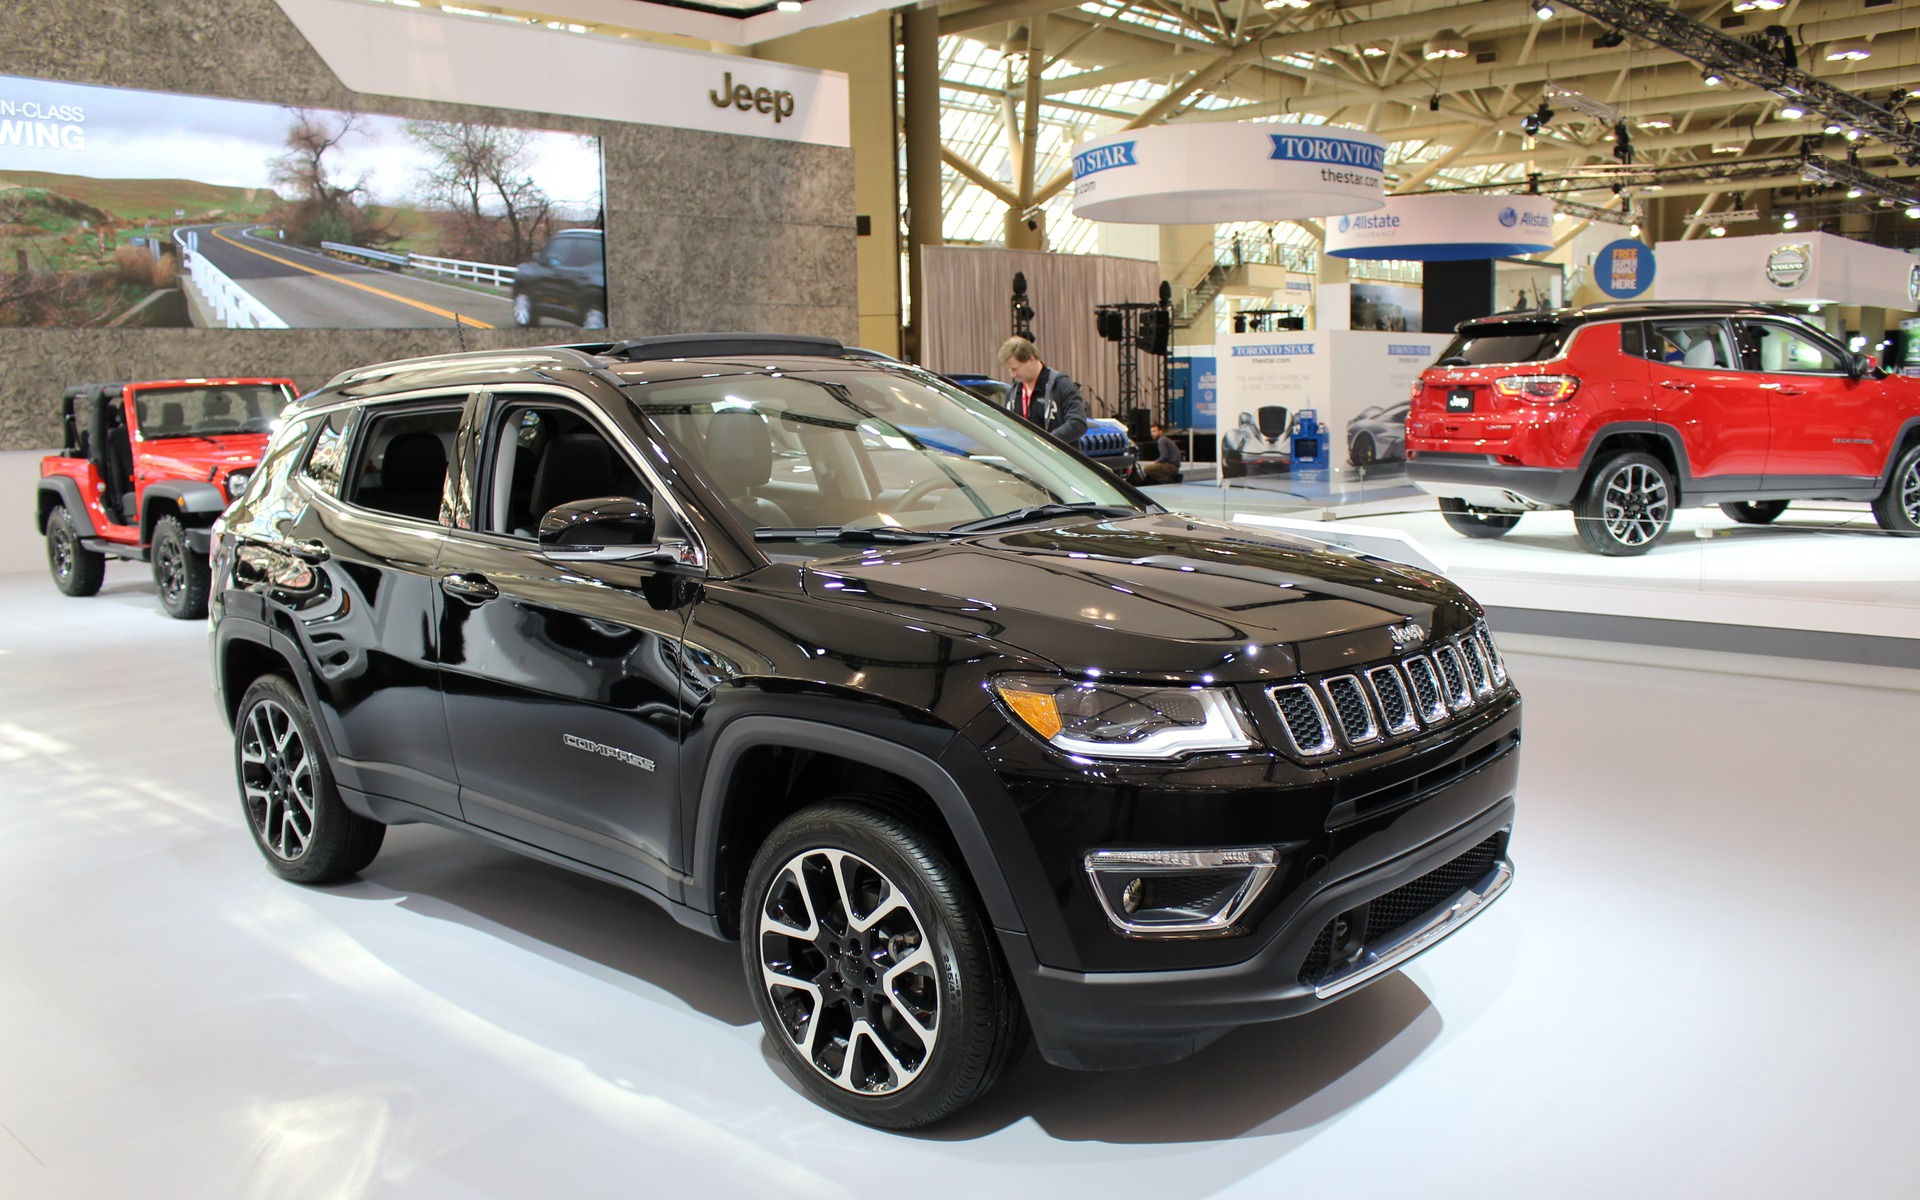 nous allons essayer le nouveau jeep compass 2017 un vus vital pour fca guide auto. Black Bedroom Furniture Sets. Home Design Ideas